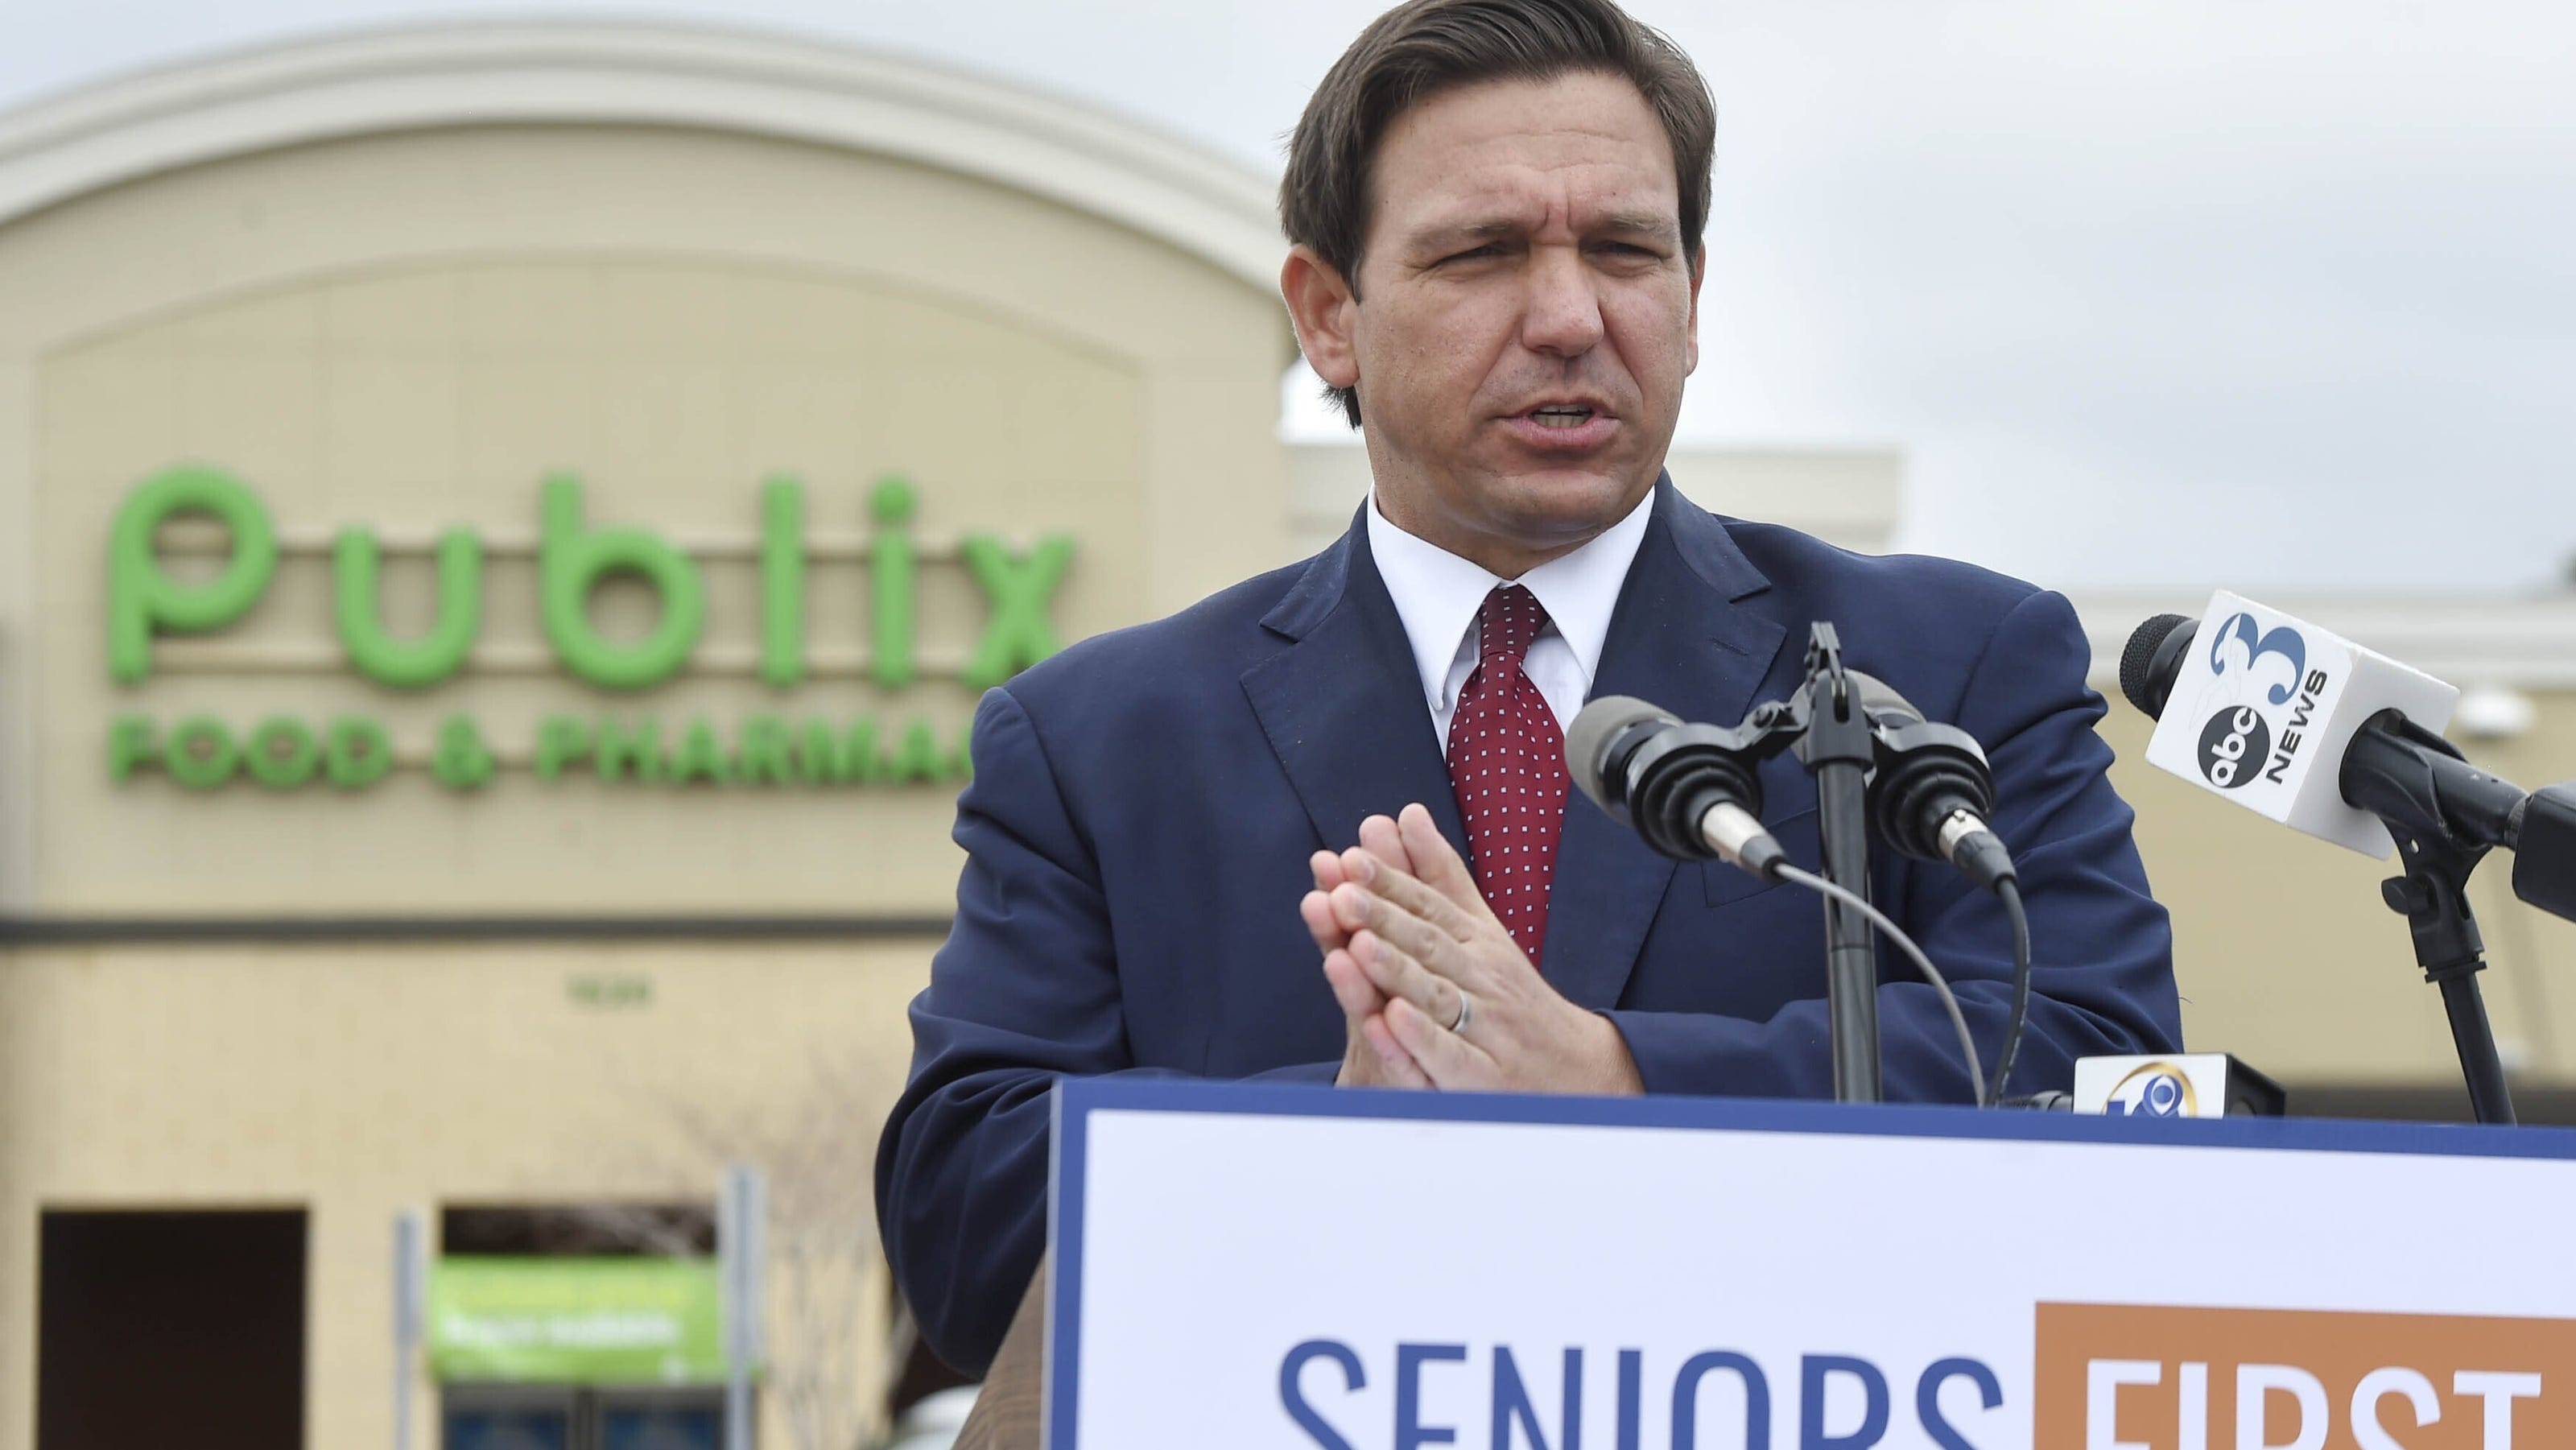 County commissioners furious about Publix vaccine plan